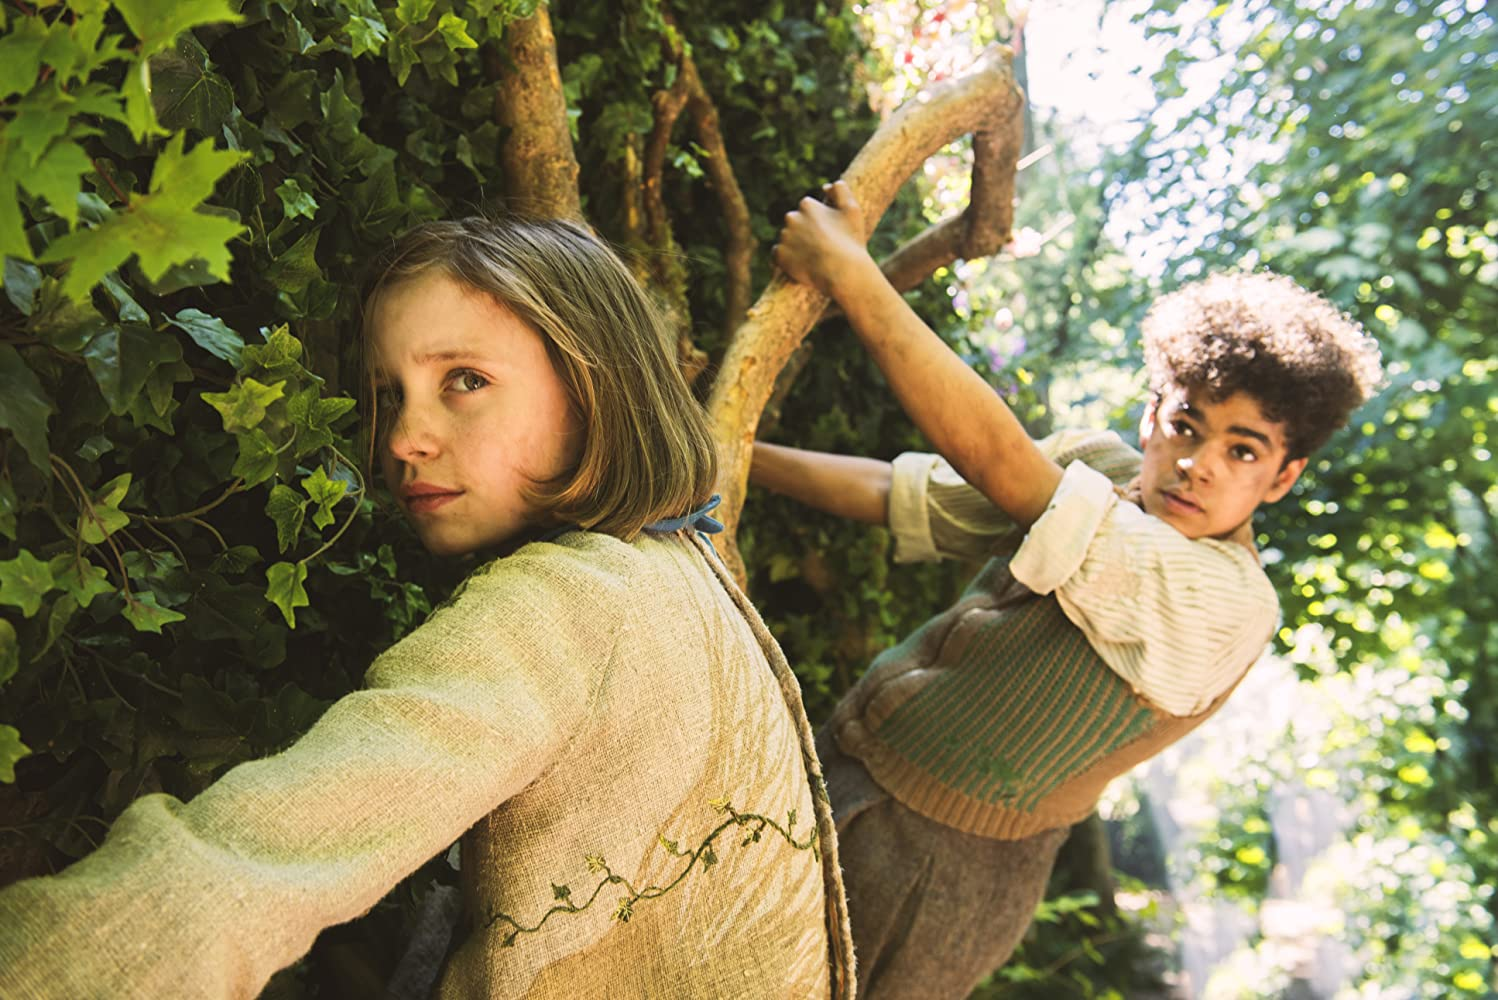 The Secret Garden: How to Lose the Power of a Classic | Den of Geek